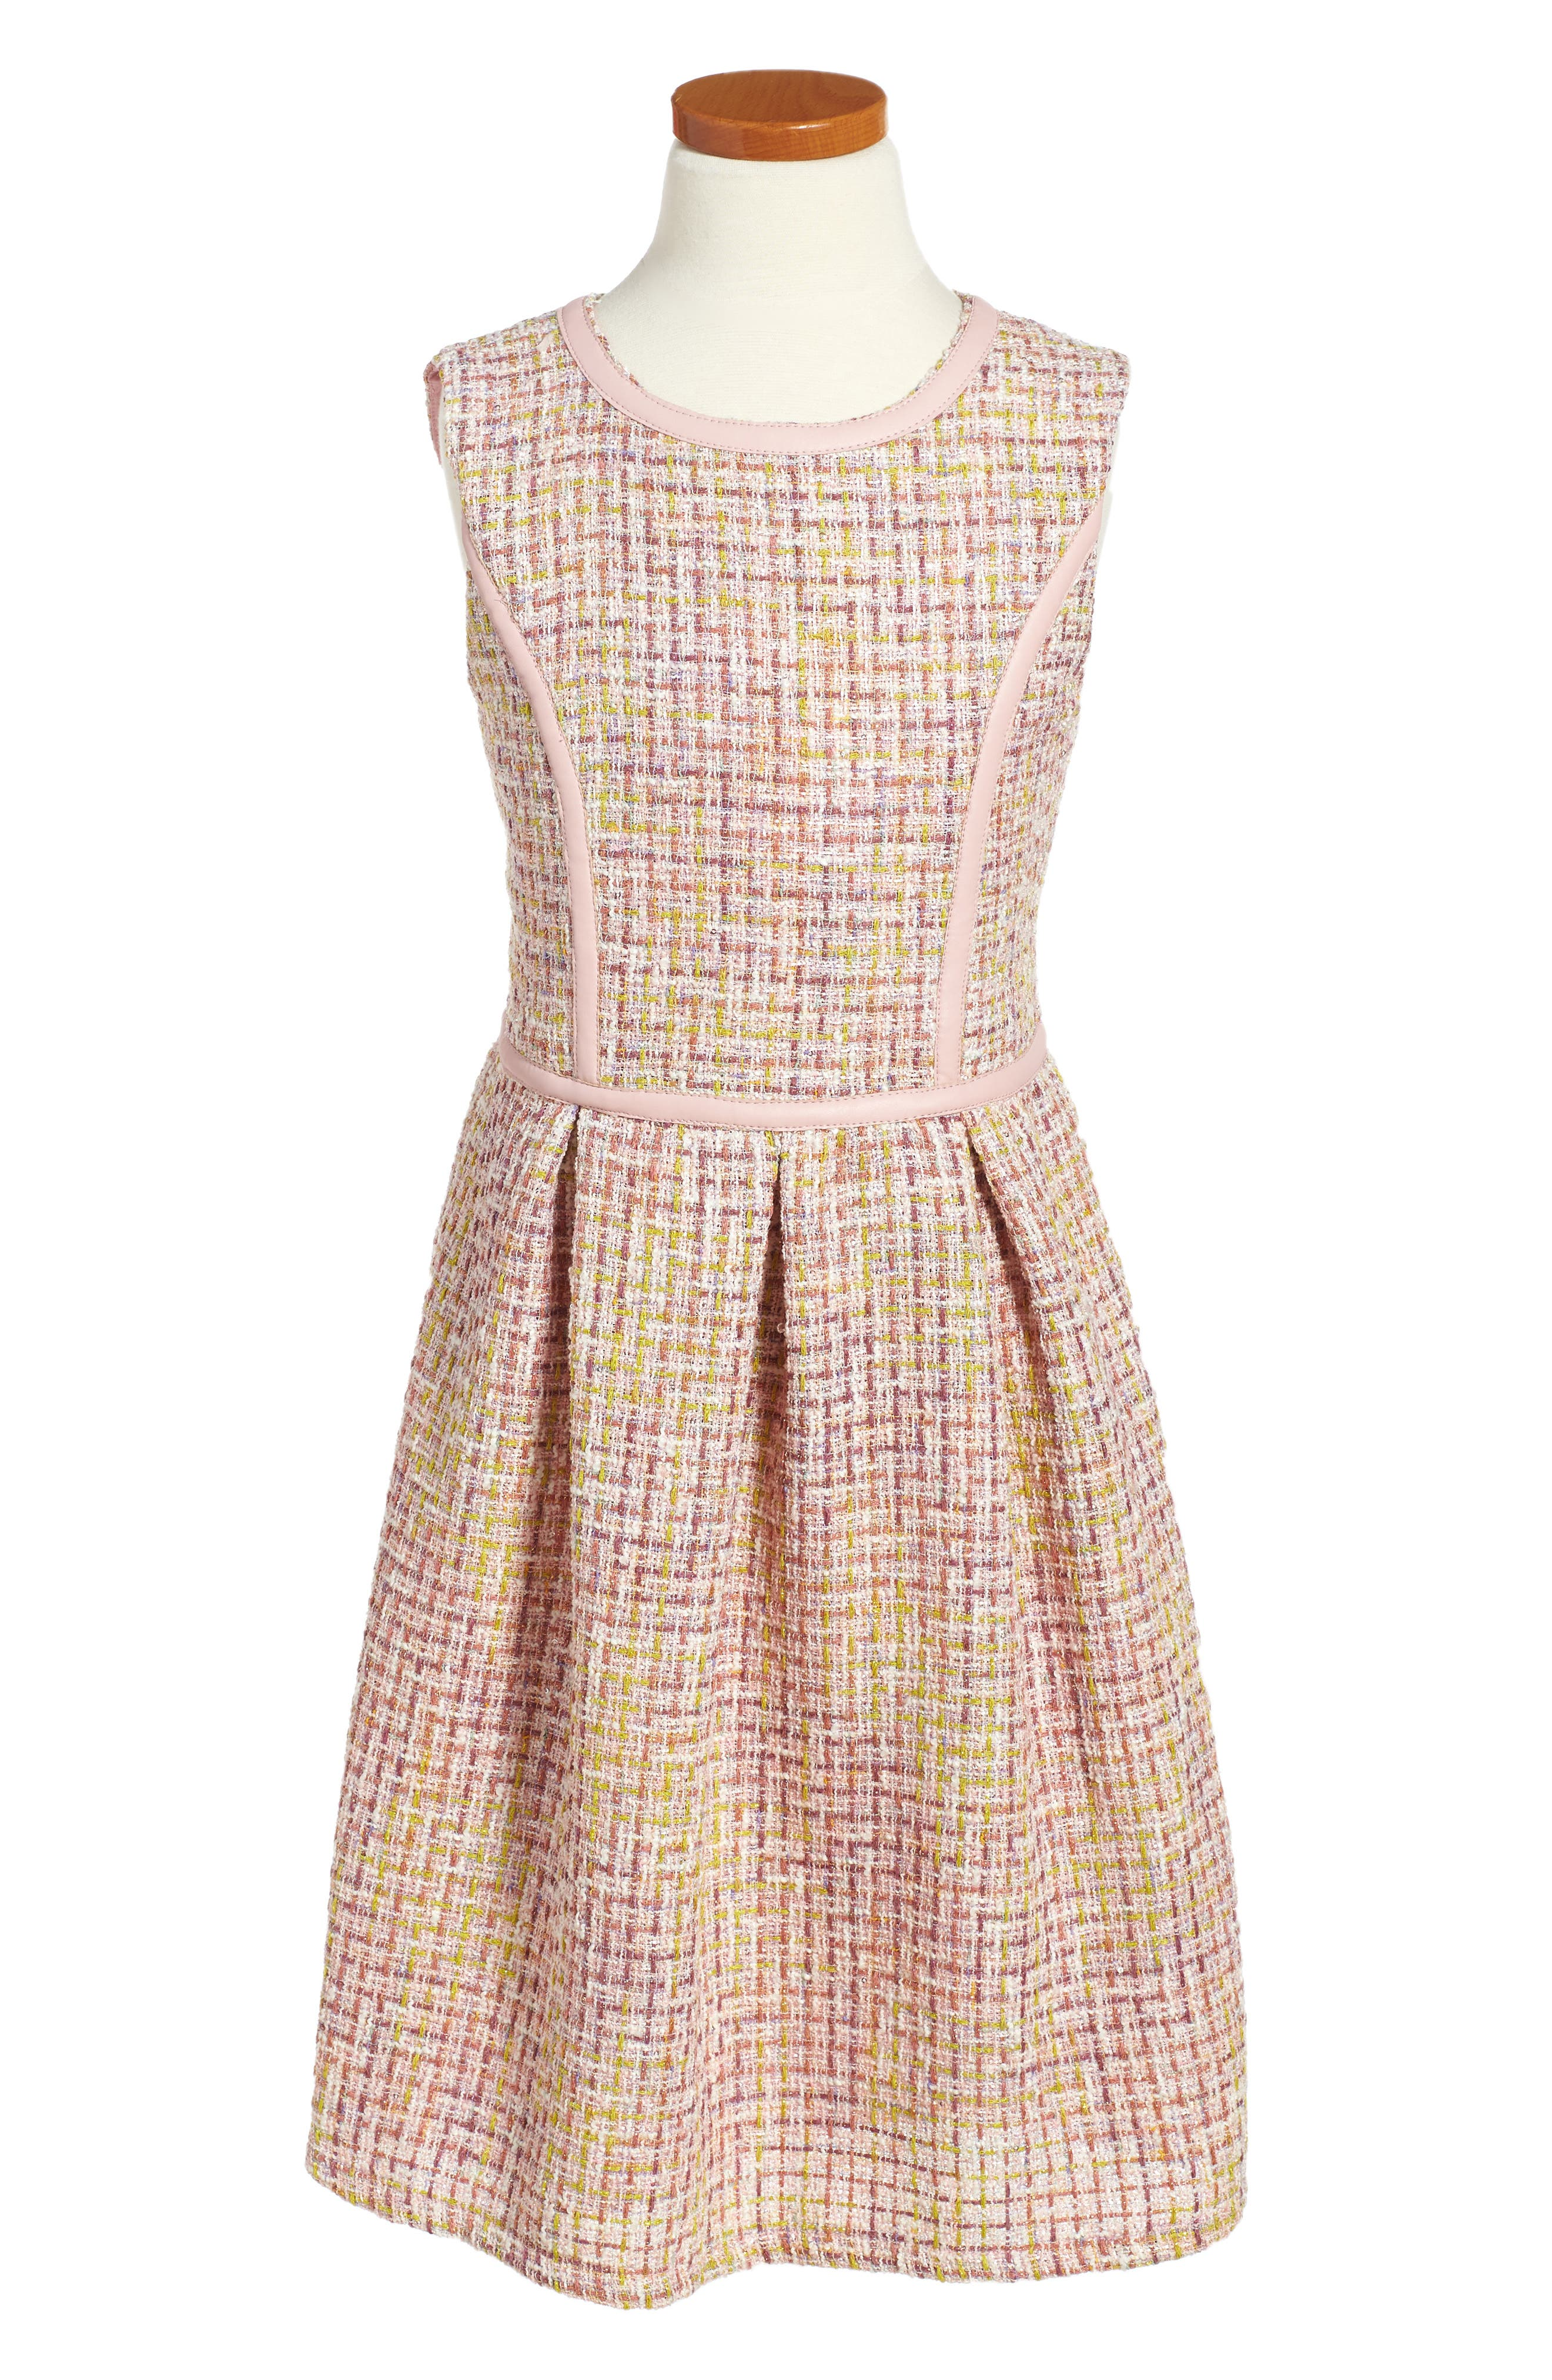 BLUSH BY US ANGELS Tweed Fit & Flare Dress